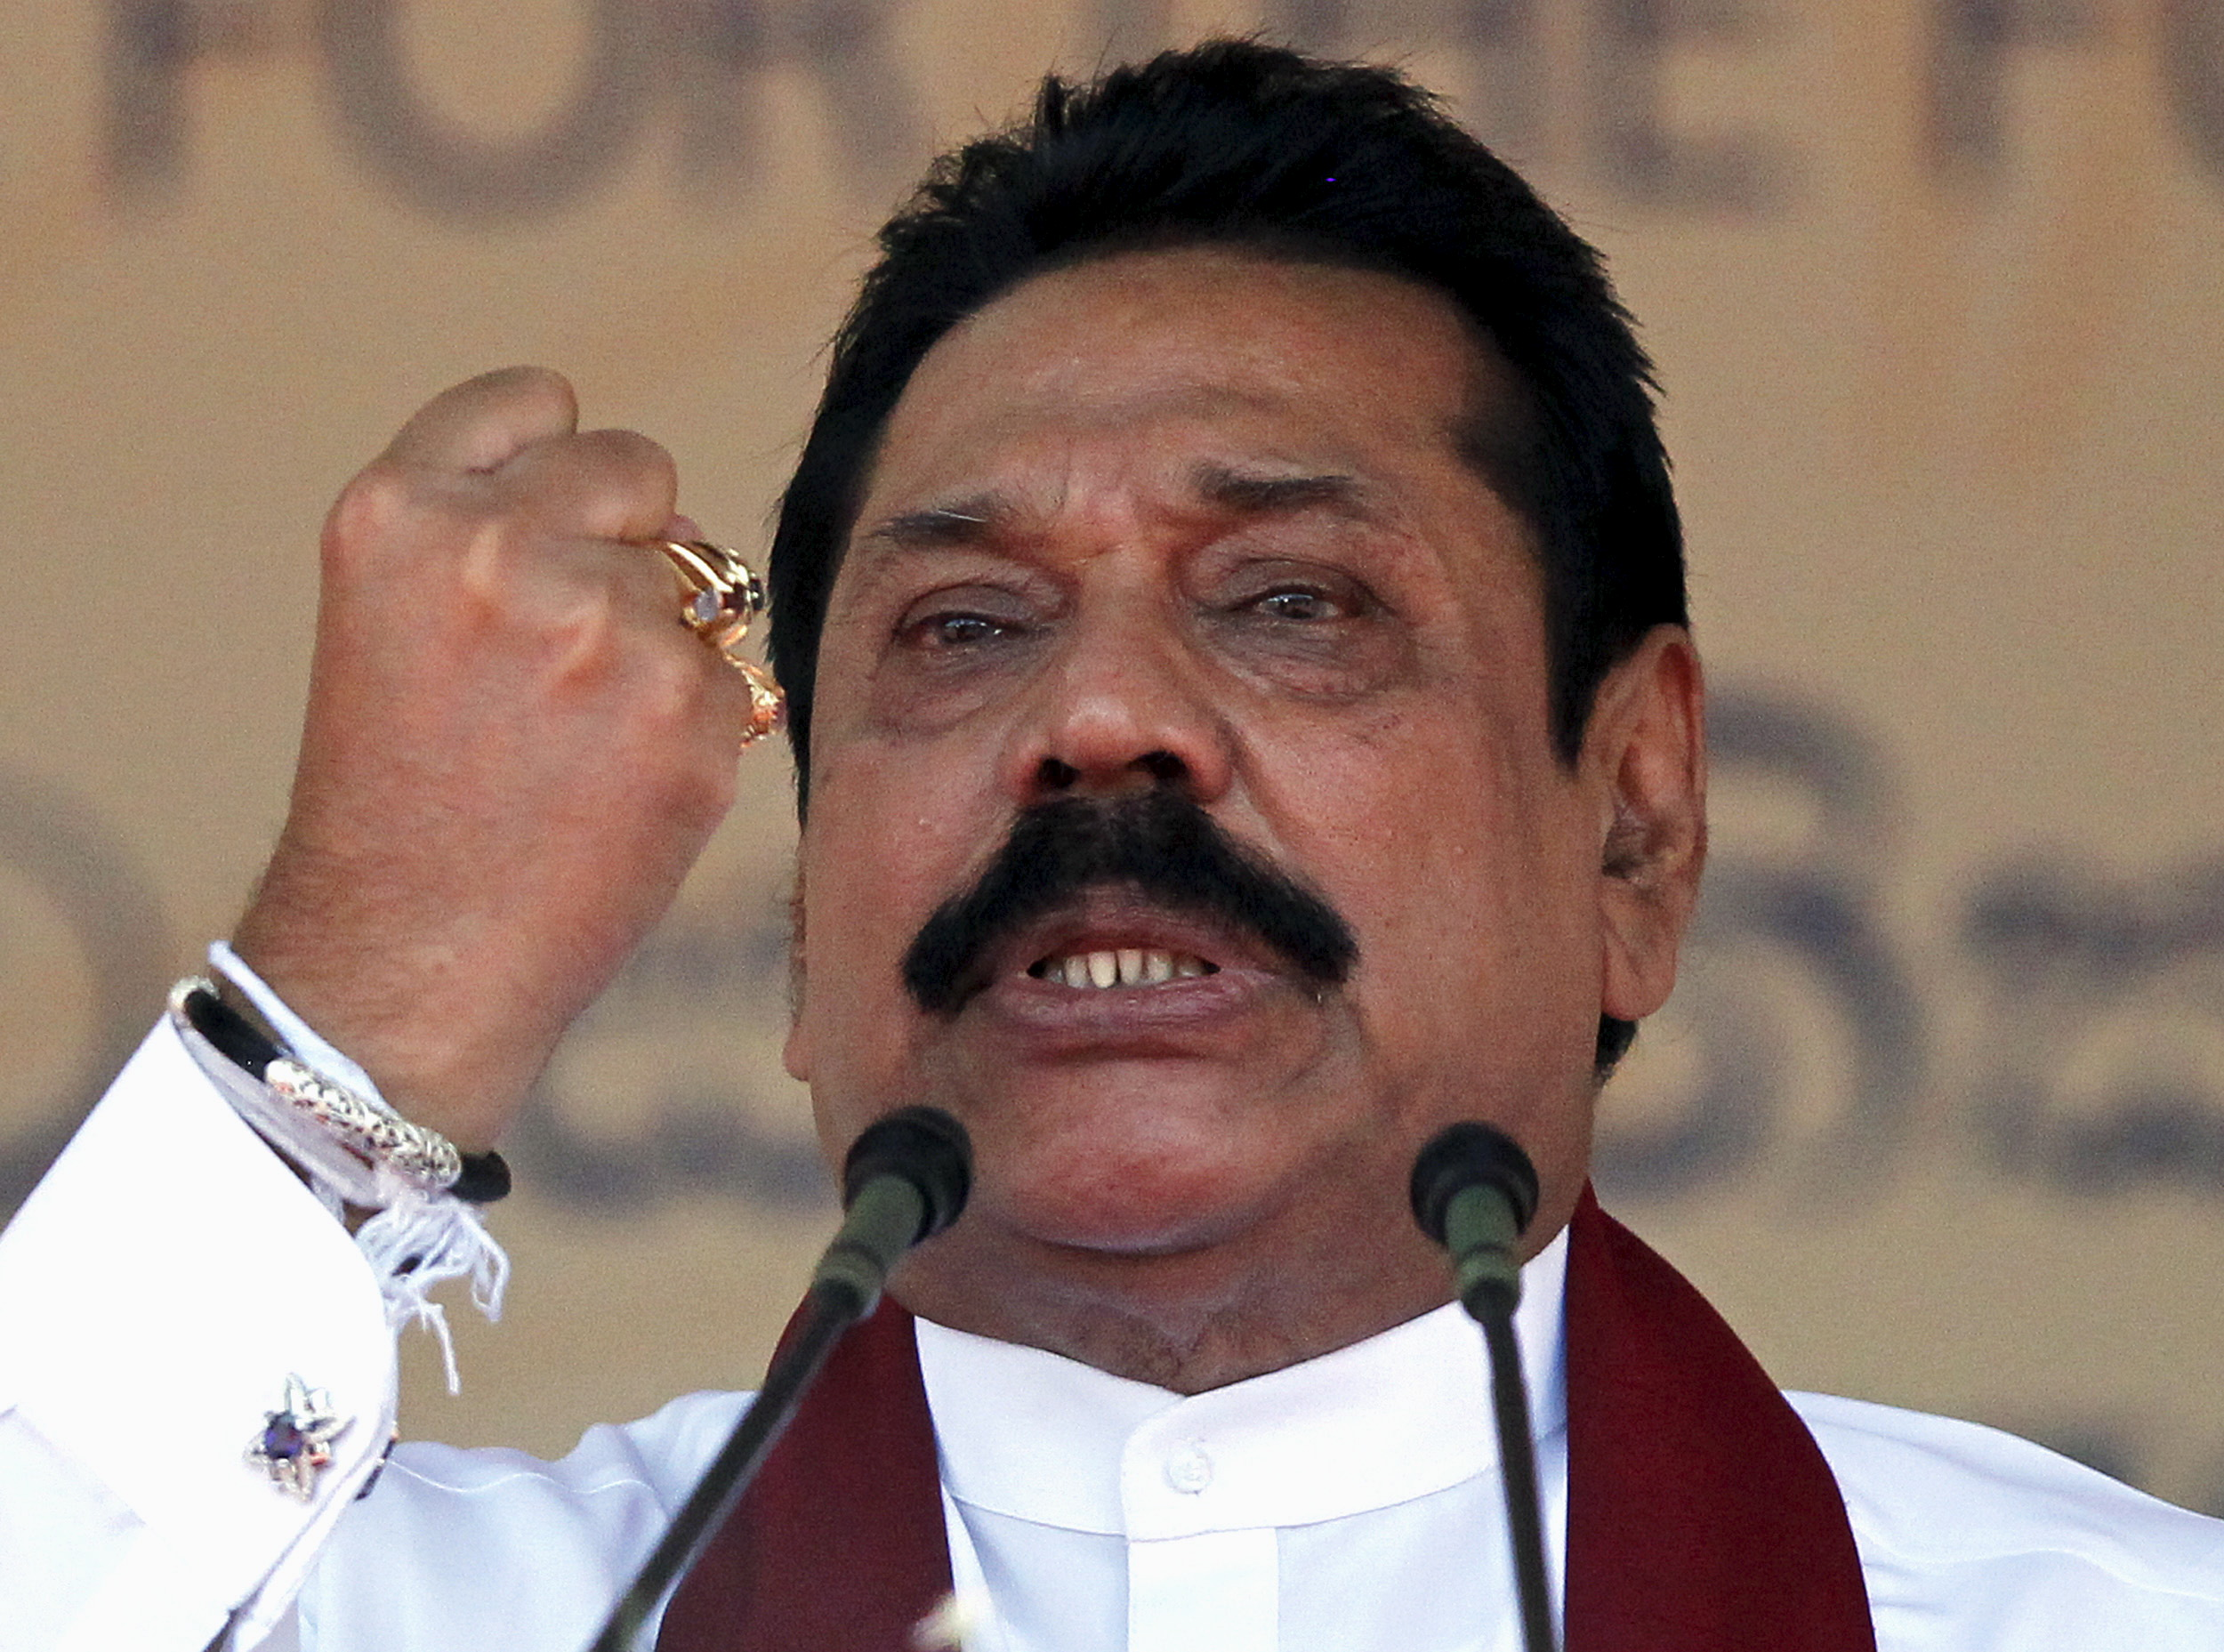 Sri Lanka's former president Mahinda Rajapaksa, who is contesting in the upcoming general election, speaks during the launch ceremony of his manifesto, in Colombo July 28, 2015